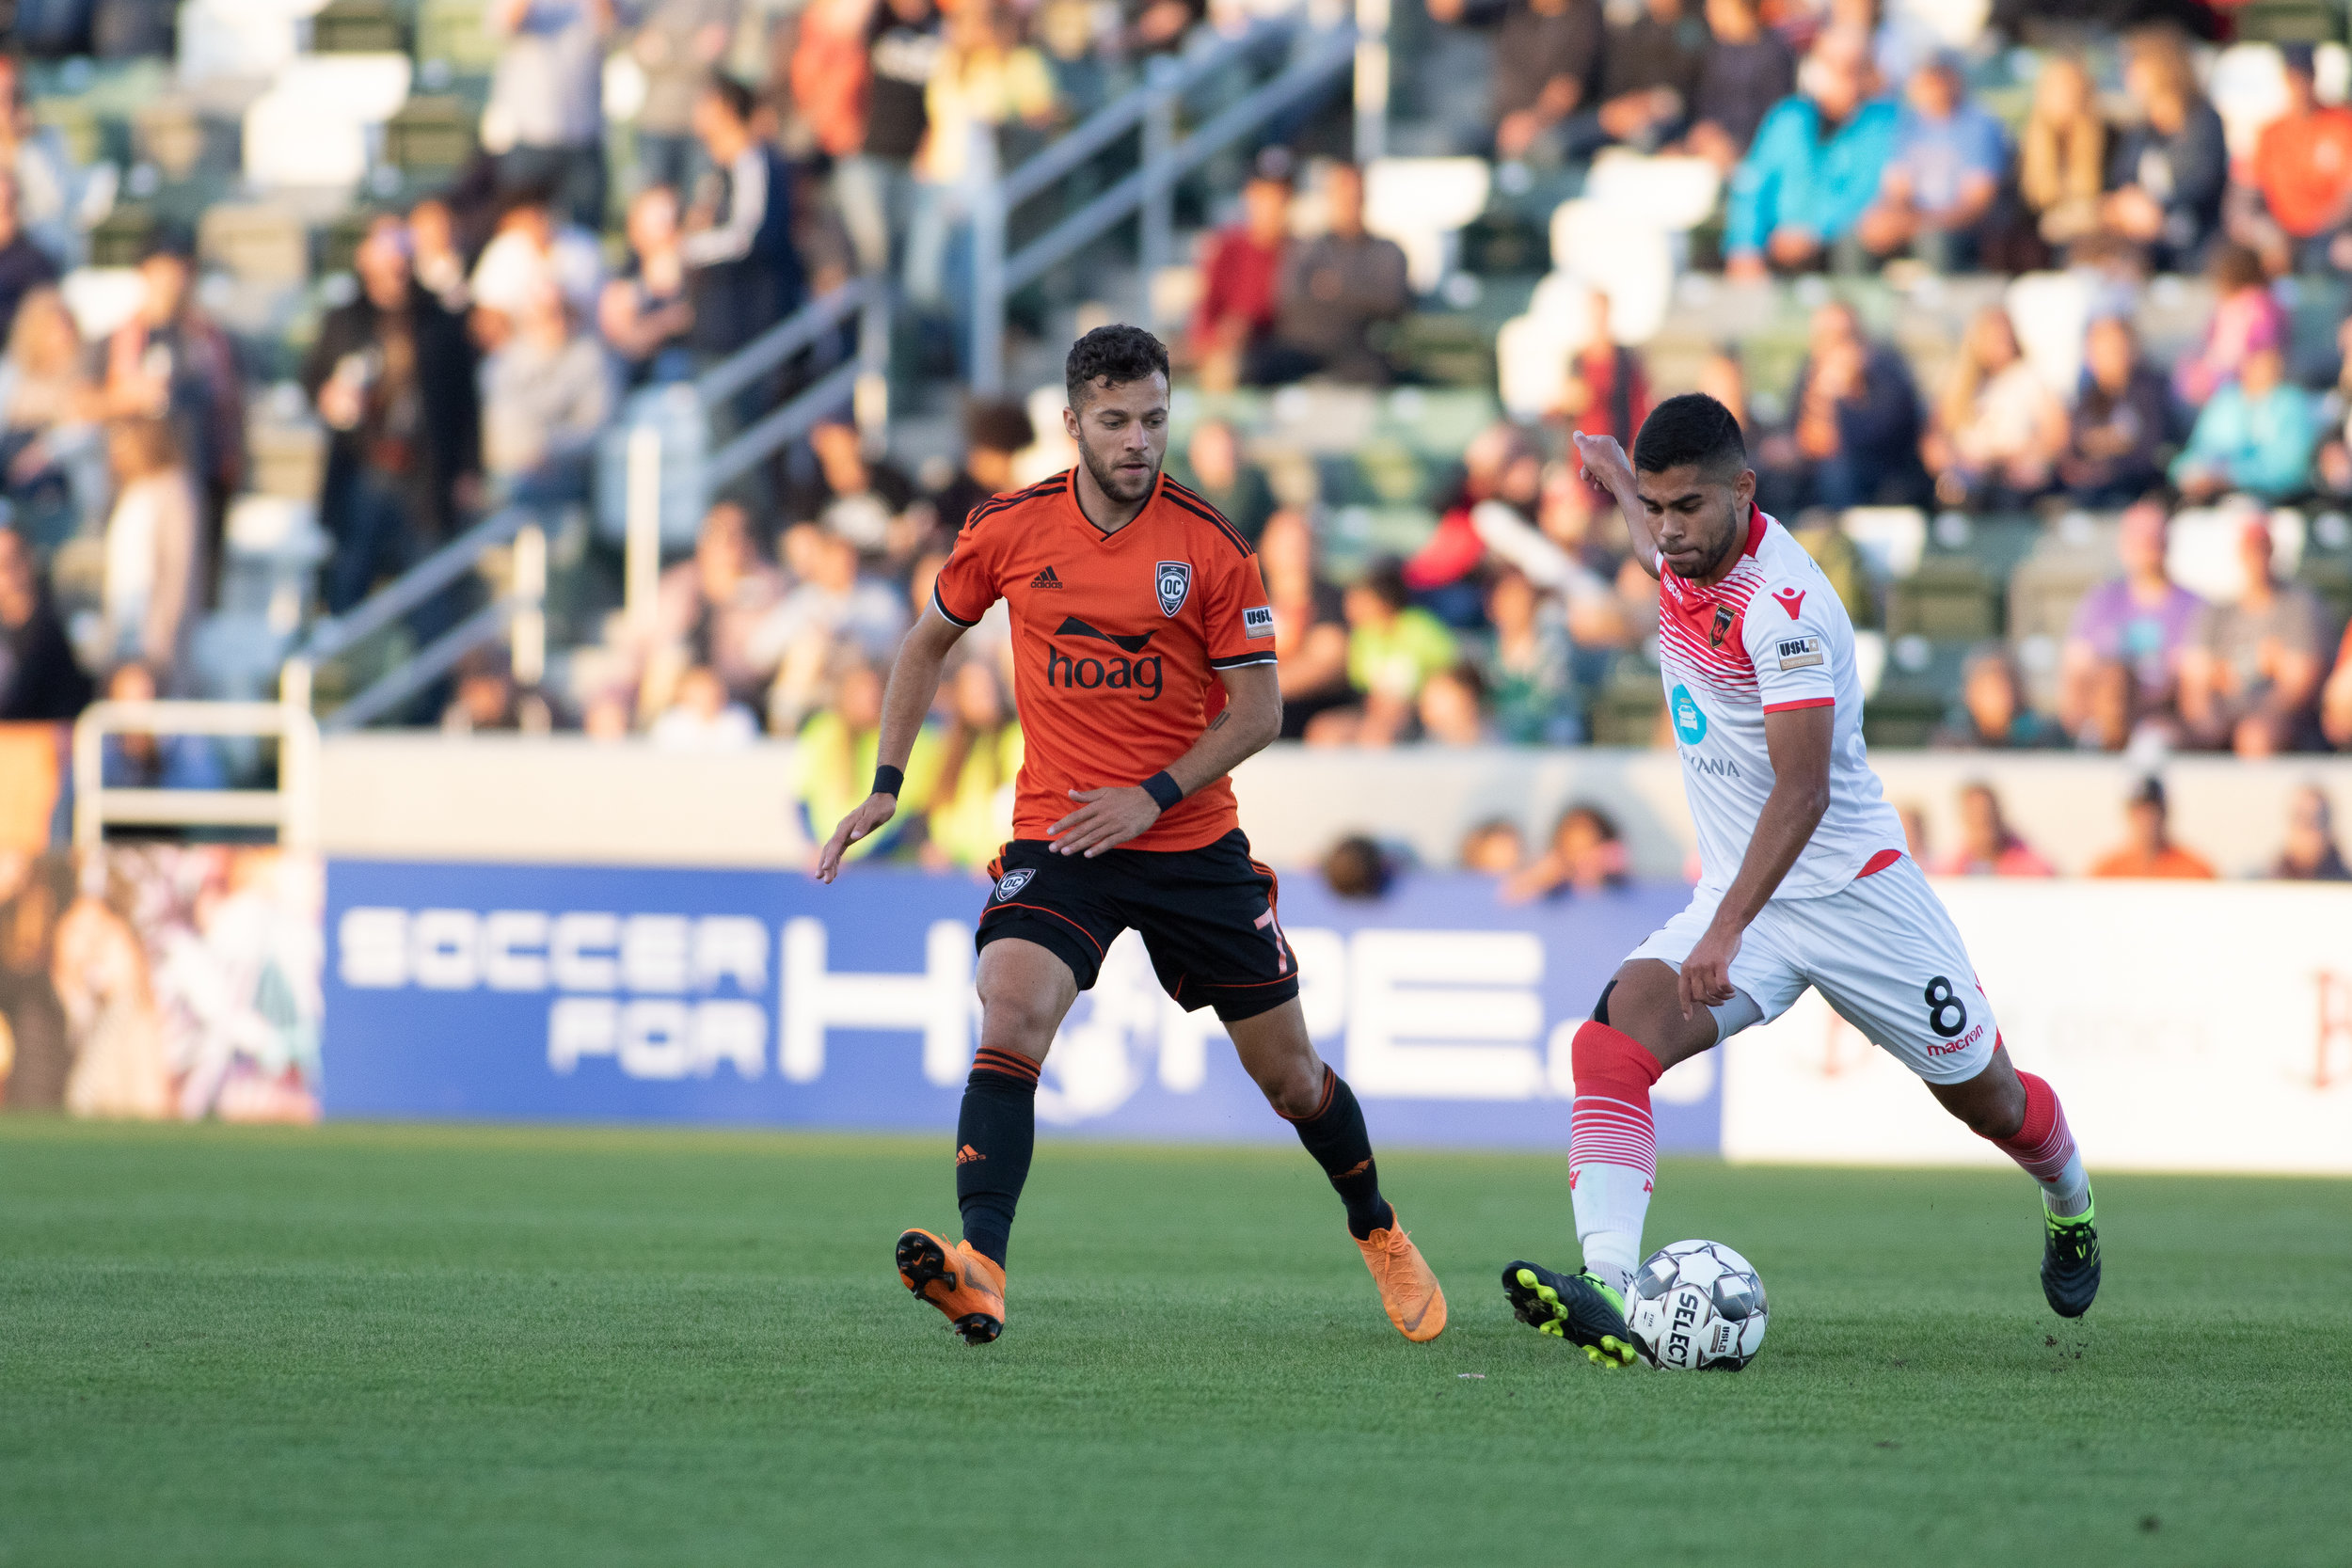 Orange County SC's Jerry van Wolfgang playing defense in their 2-1 win over Phoenix Rising FC. | Photo courtesy of Orange County SC/Liza Rosales